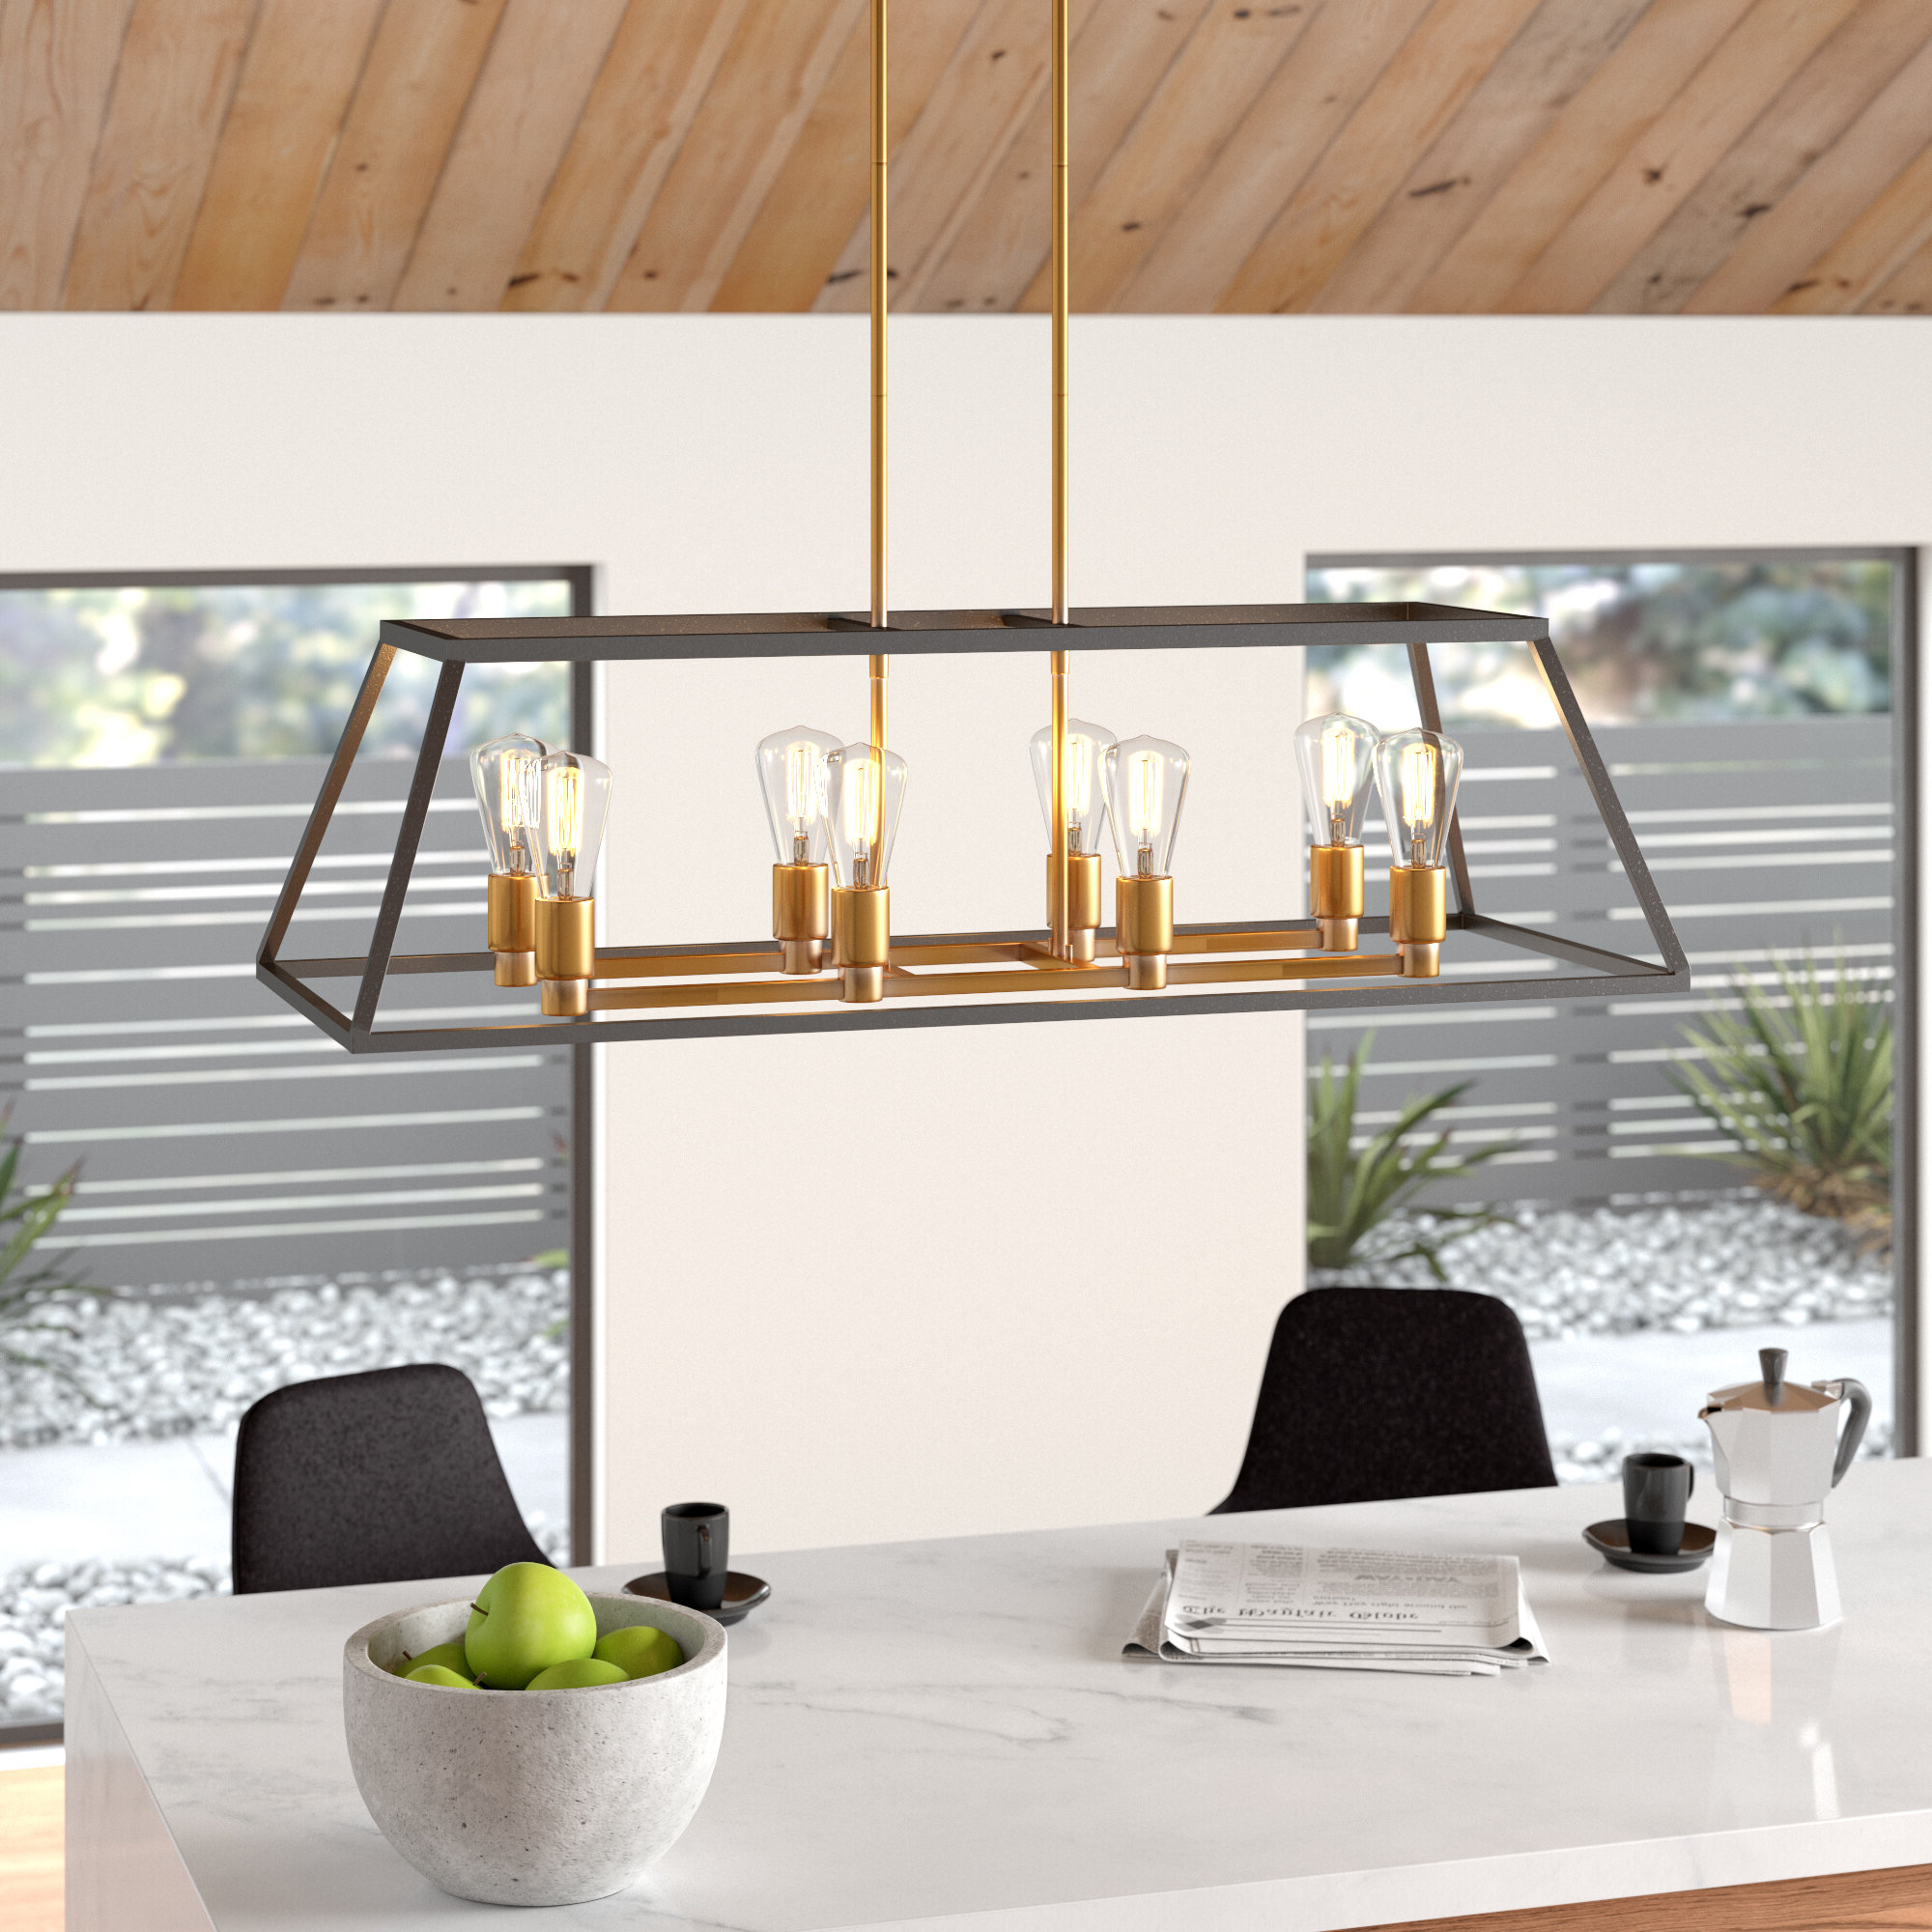 Bautista 6-Light Kitchen Island Bulb Pendants within Most Recently Released Shisler 8-Light Kitchen Island Linear Pendant